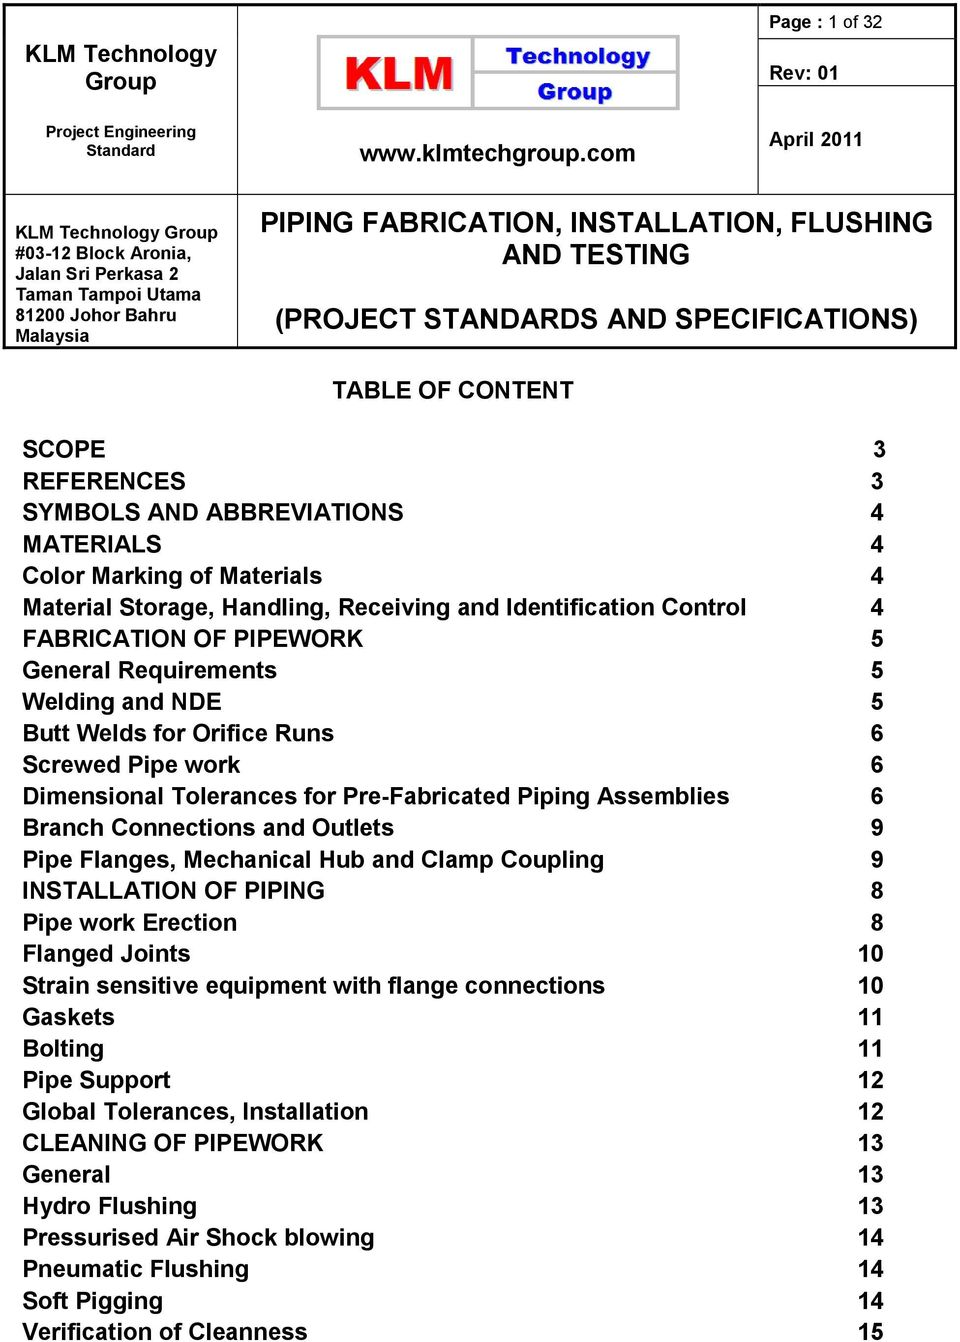 TABLE OF CONTENT - PDF